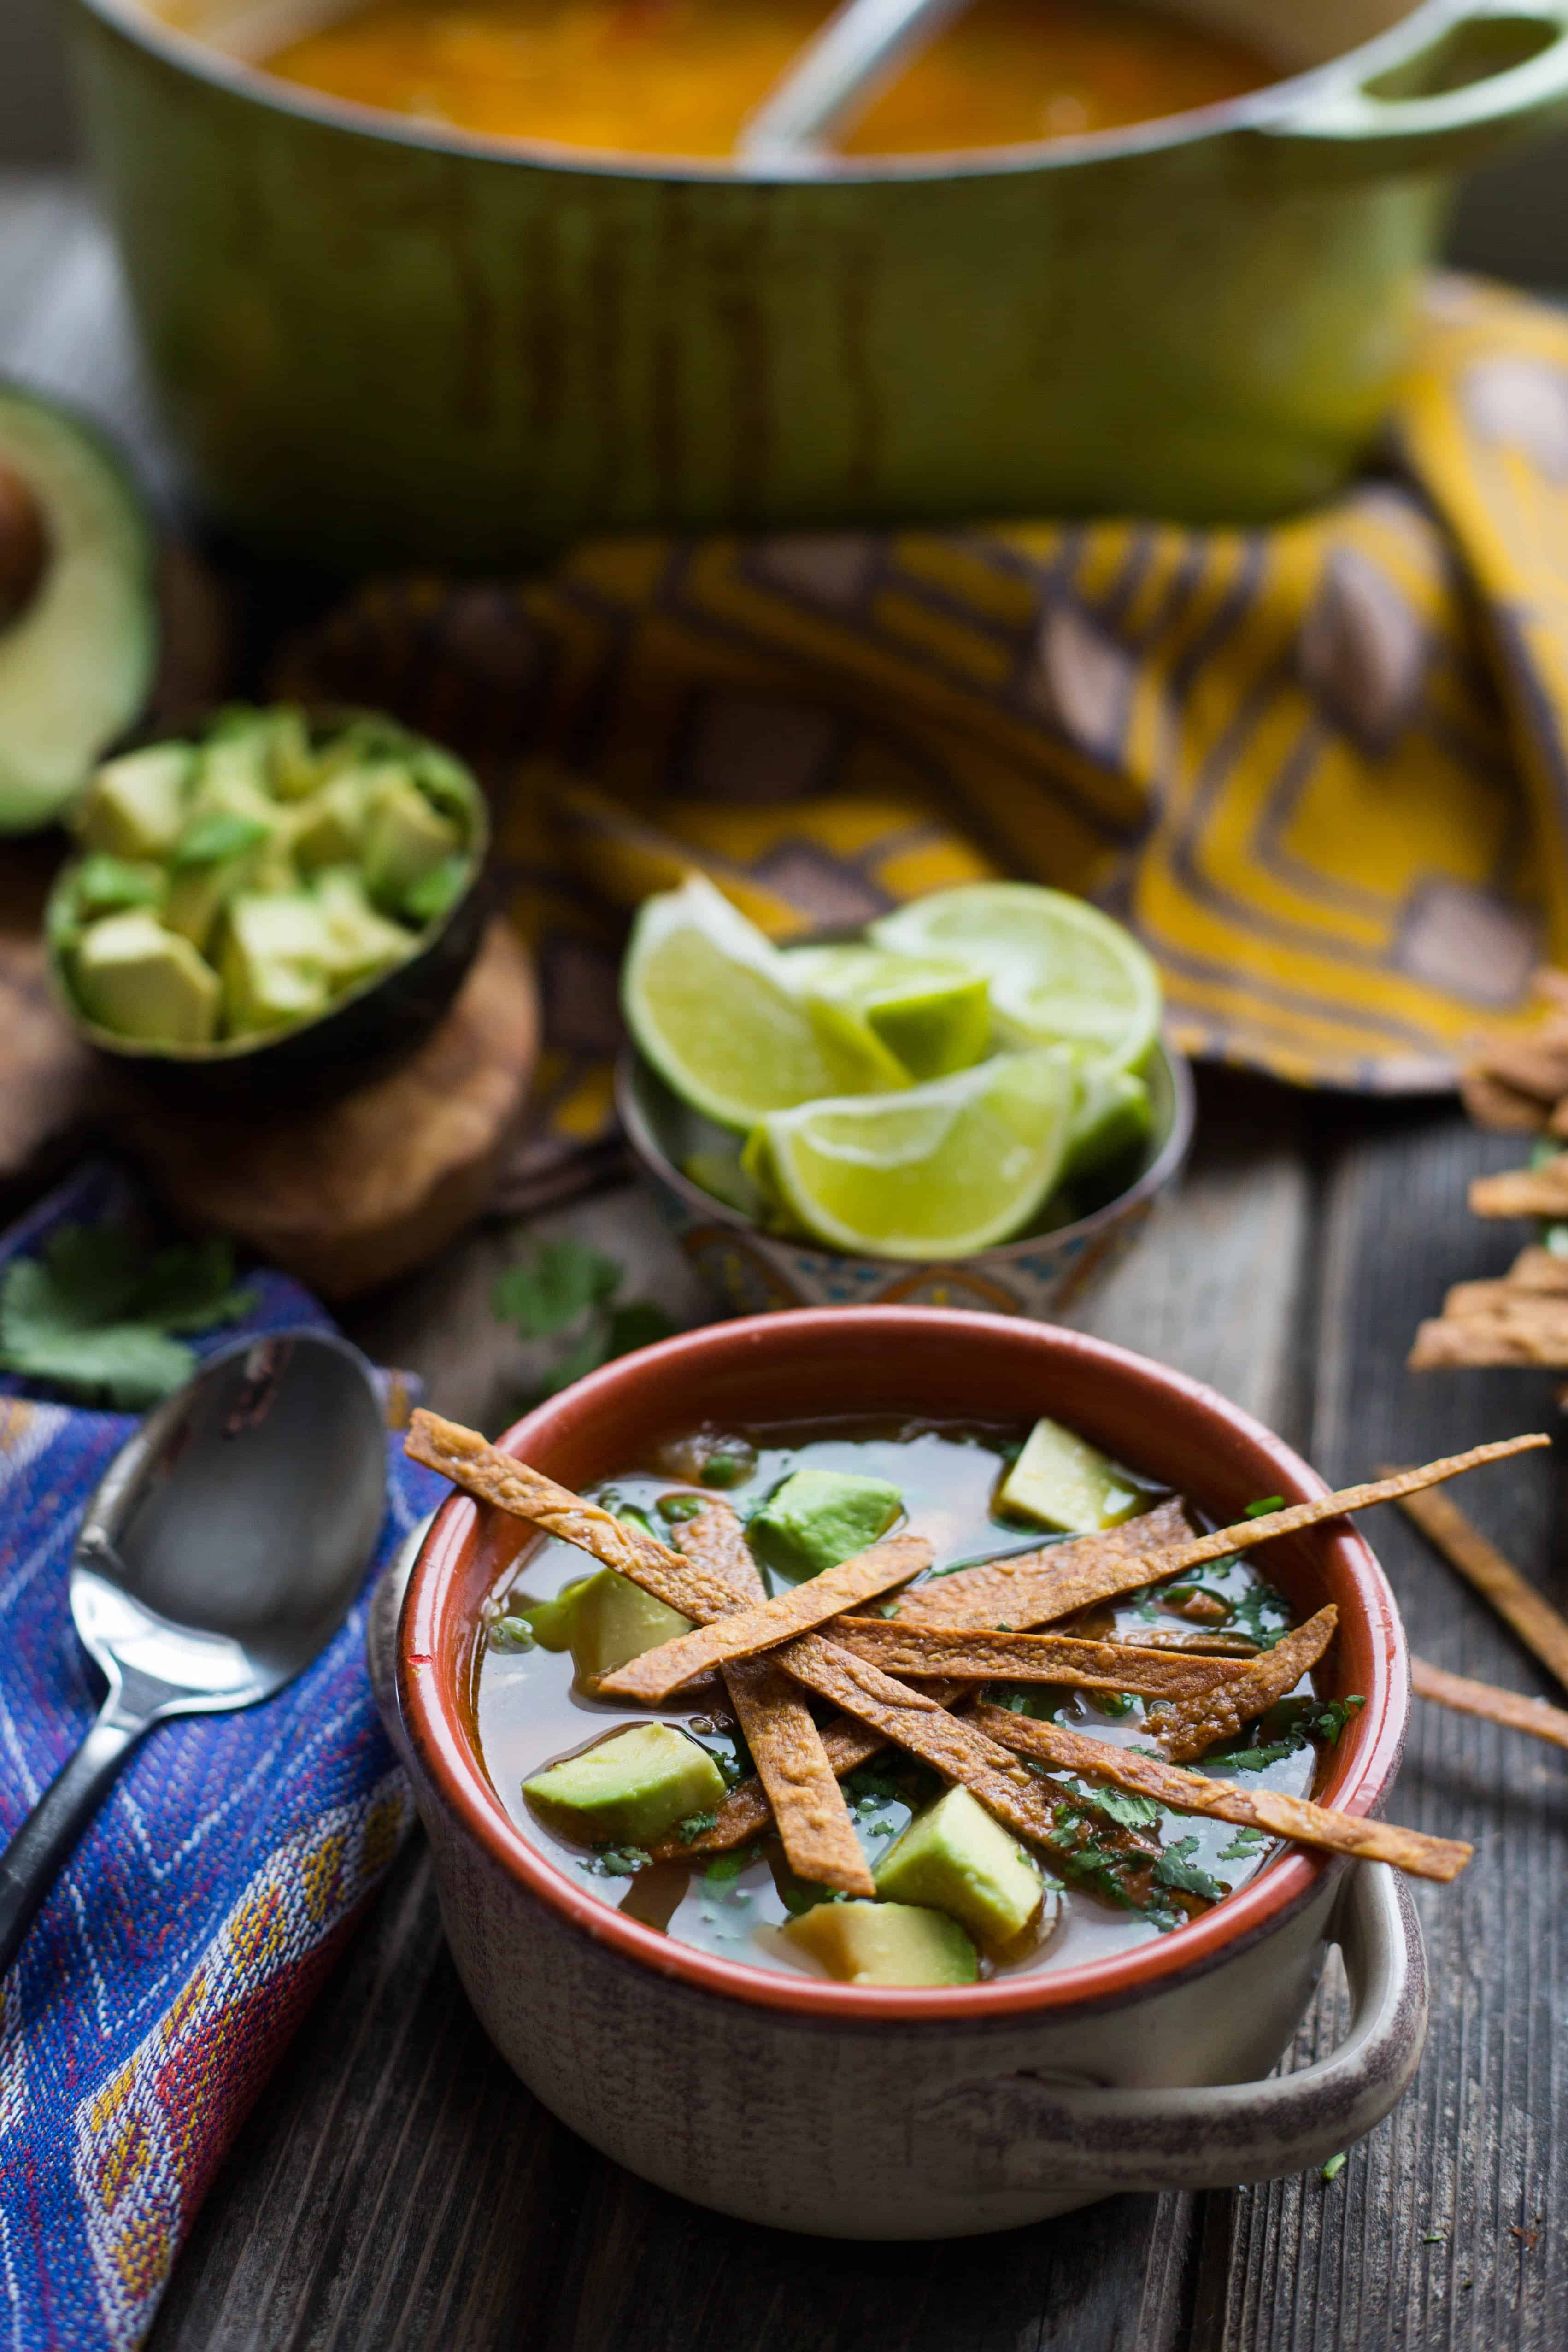 A bowl of chicken tortilla soup set on a table with bowls of avocado and lime.